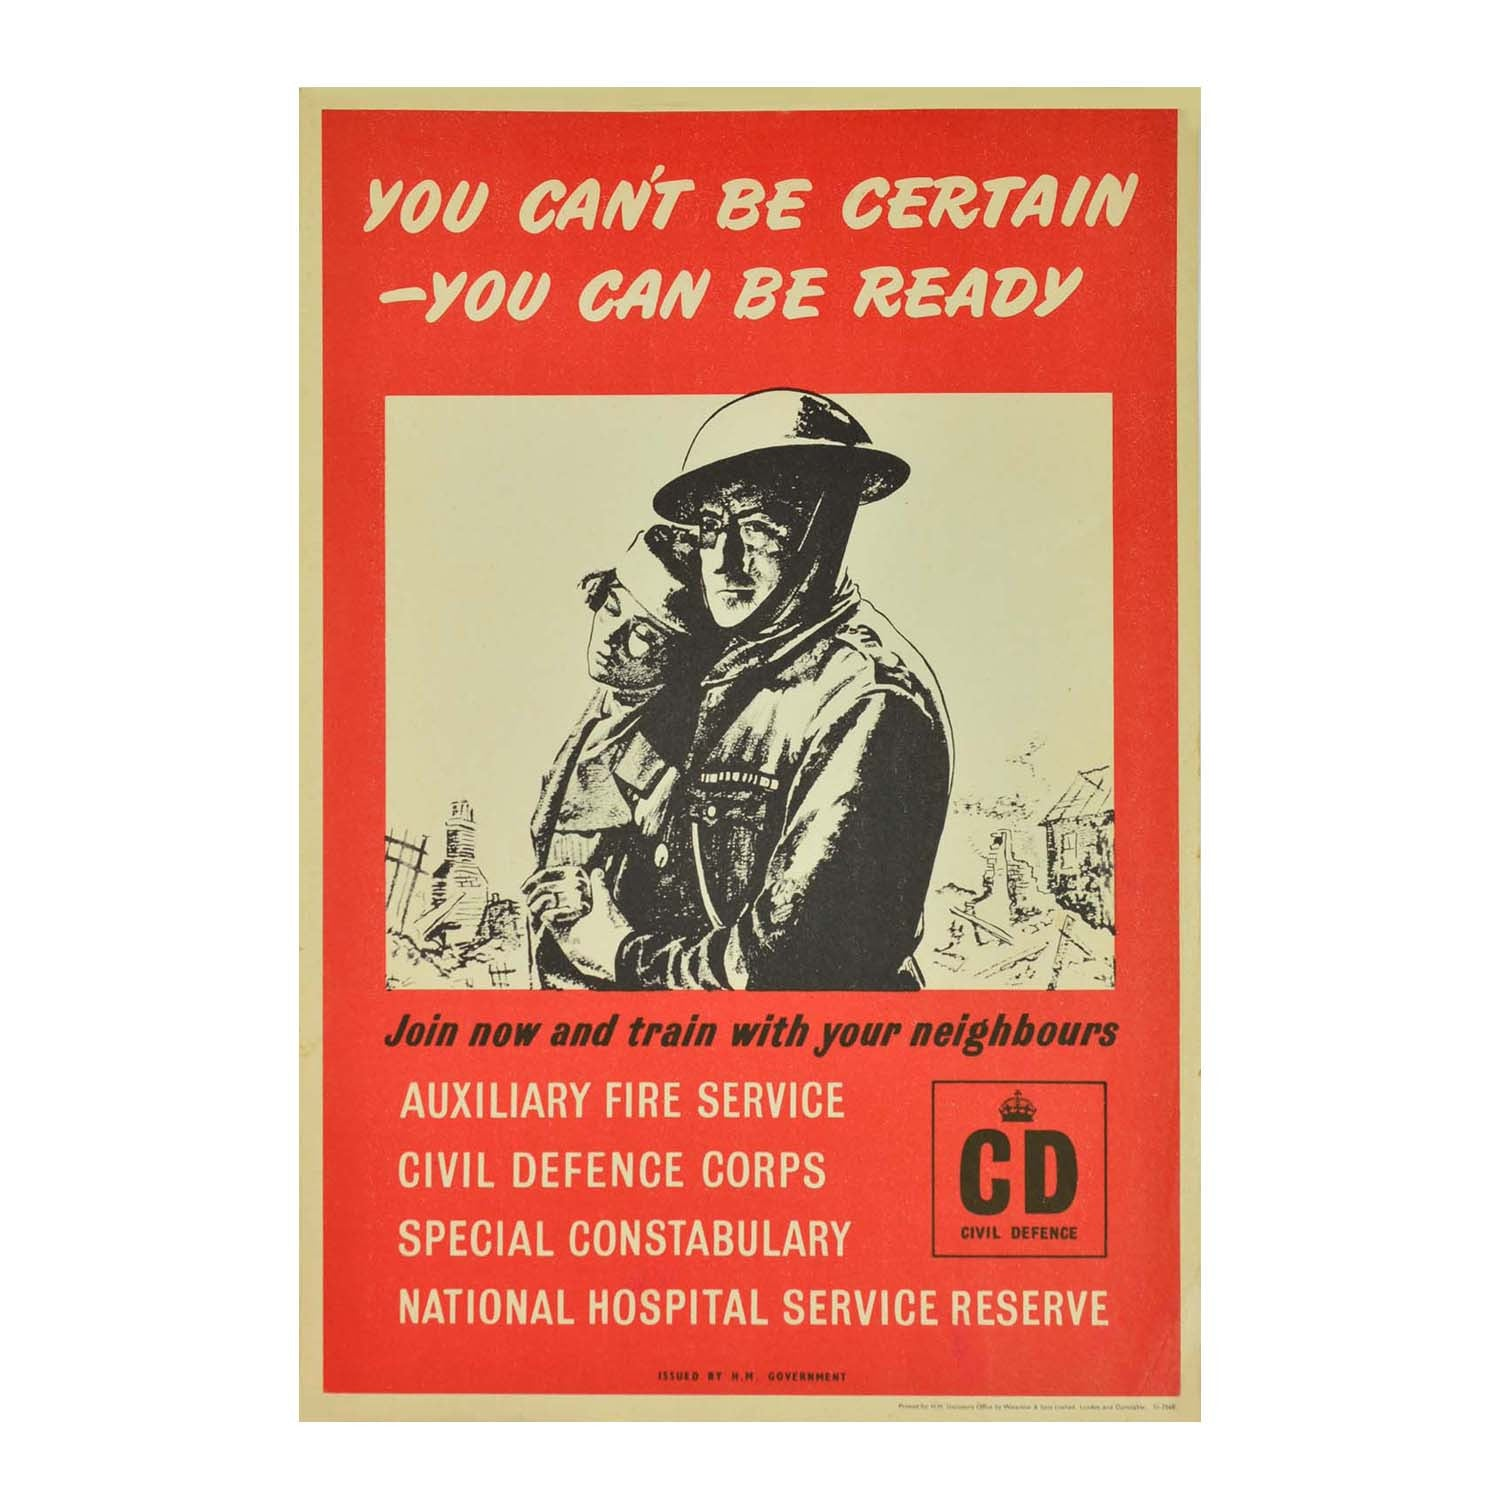 You can't be certain - you can be ready